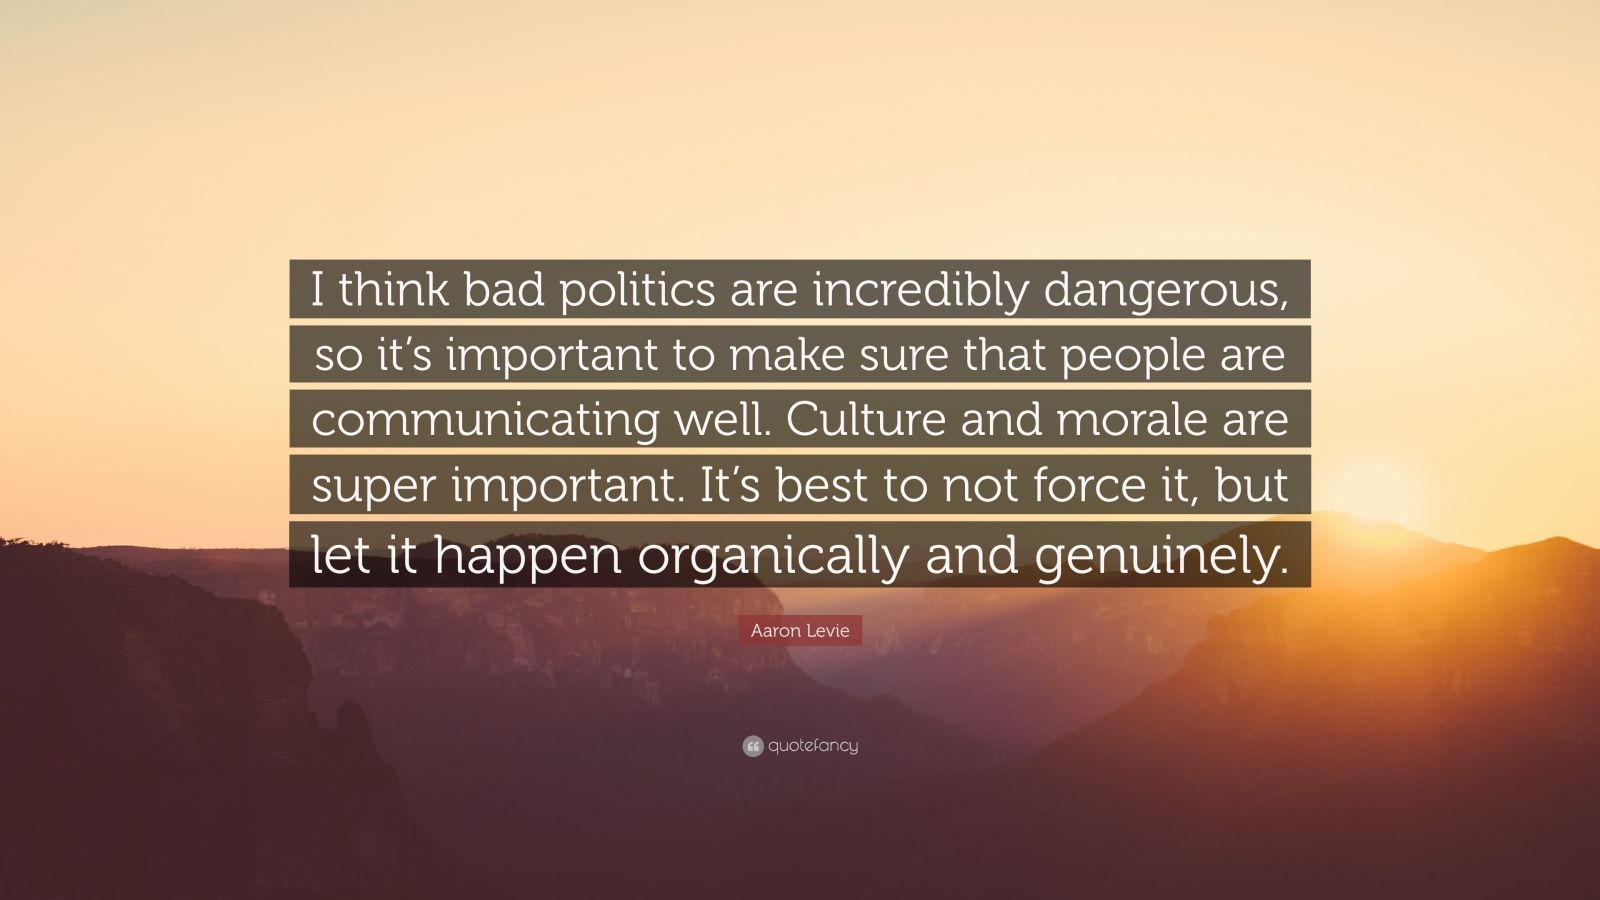 """Aaron Levie Quote: """"I think bad politics are incredibly dangerous, so it's important to make sure that people are communicating well. Culture and morale are super important. It's best to not force it, but let it happen organically and genuinely."""""""